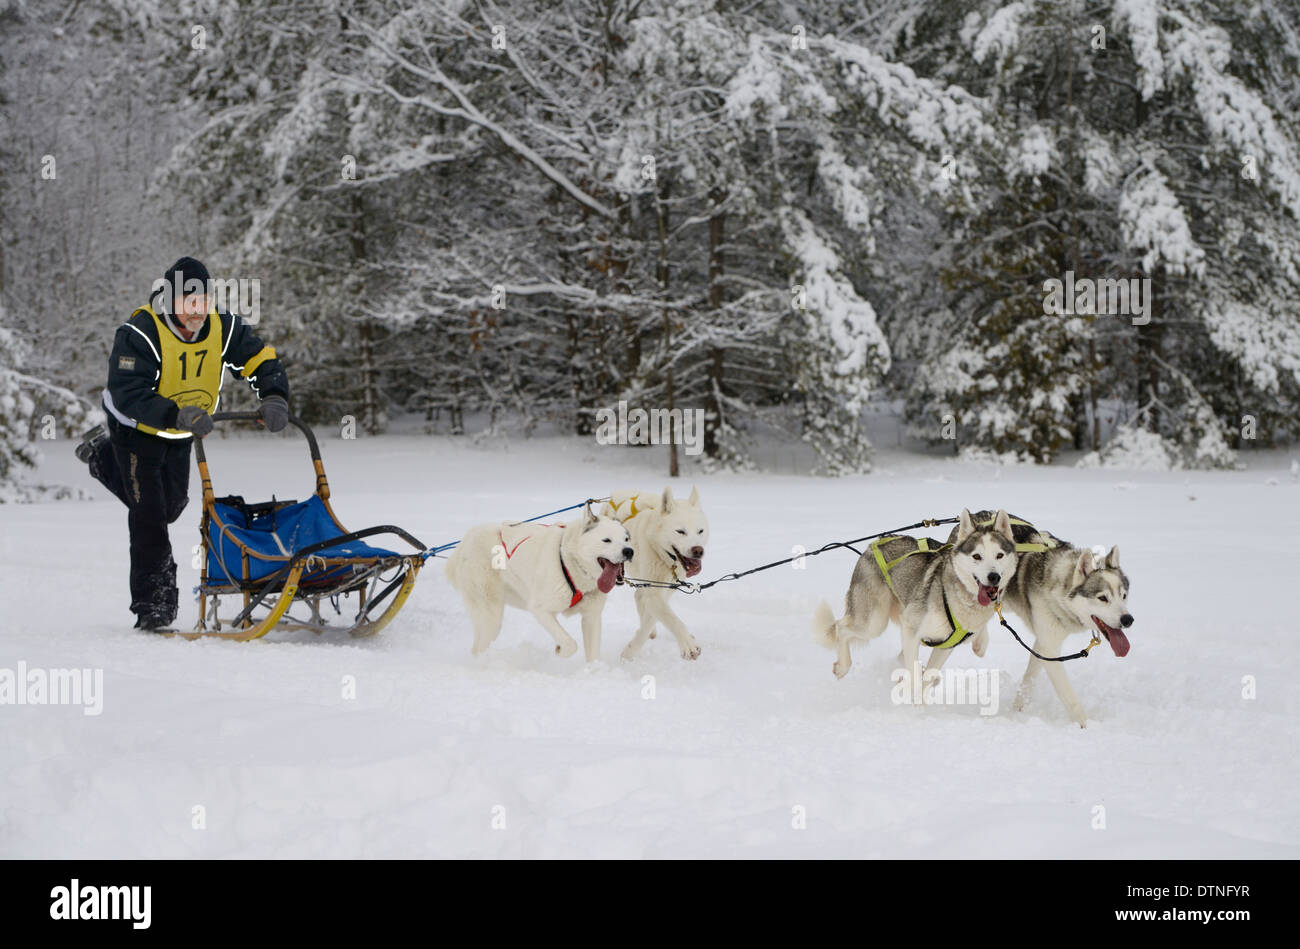 Male musher pushing four dog sled race event at Marmora Snofest Ontario Canada with snow covered evergreen trees - Stock Image